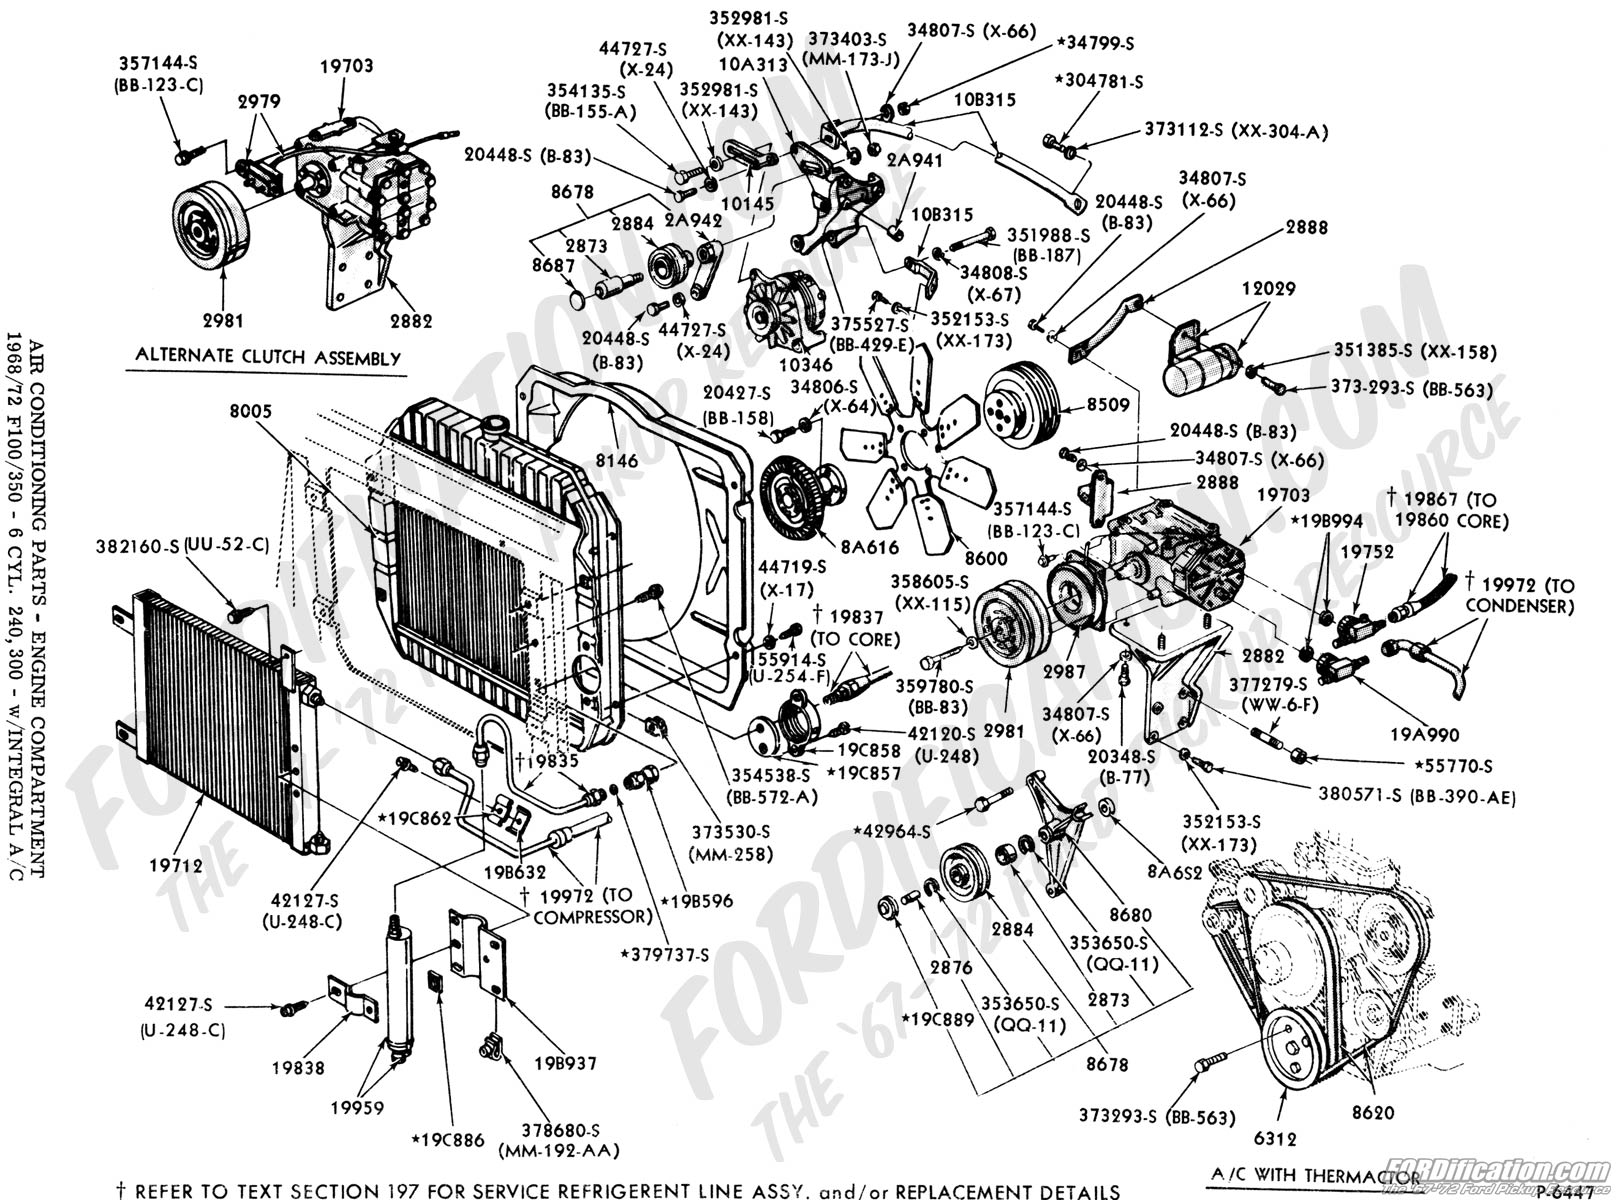 P0070 moreover Discussion T21297 ds544302 also Chevy Equinox Diagrams further 68 Ford Mustang Headlight Switch Wiring Diagram besides Generic VR Scheme. on car ac wiring diagram